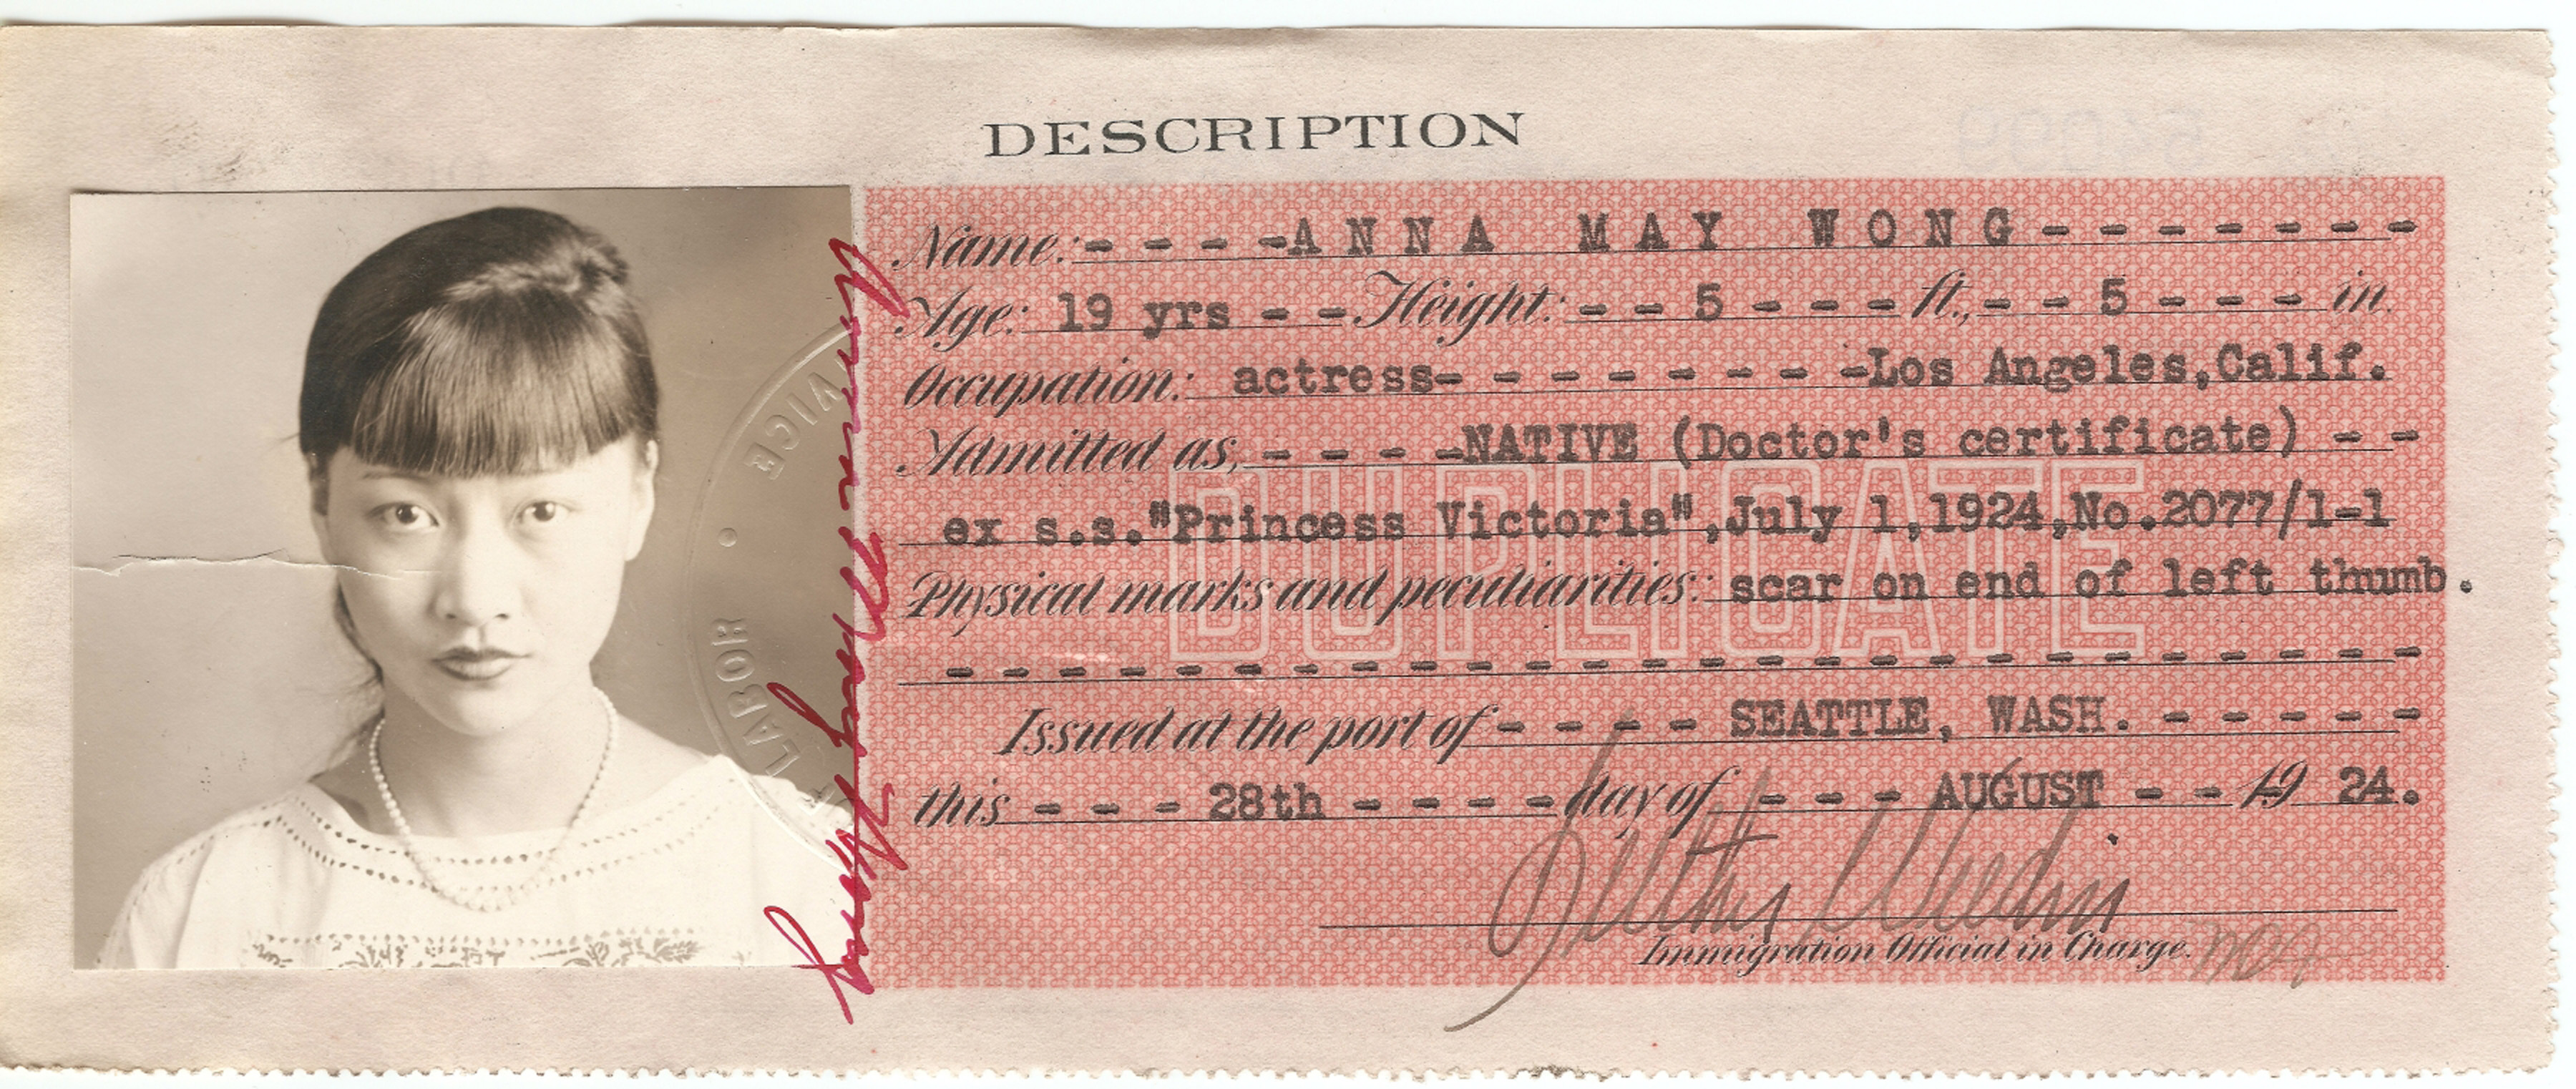 government-issued identification card for Anna May Wong, the silent film actress. Starting in 1909, Chinese entering or residing in the U.S. were required to carry such ID at all times.